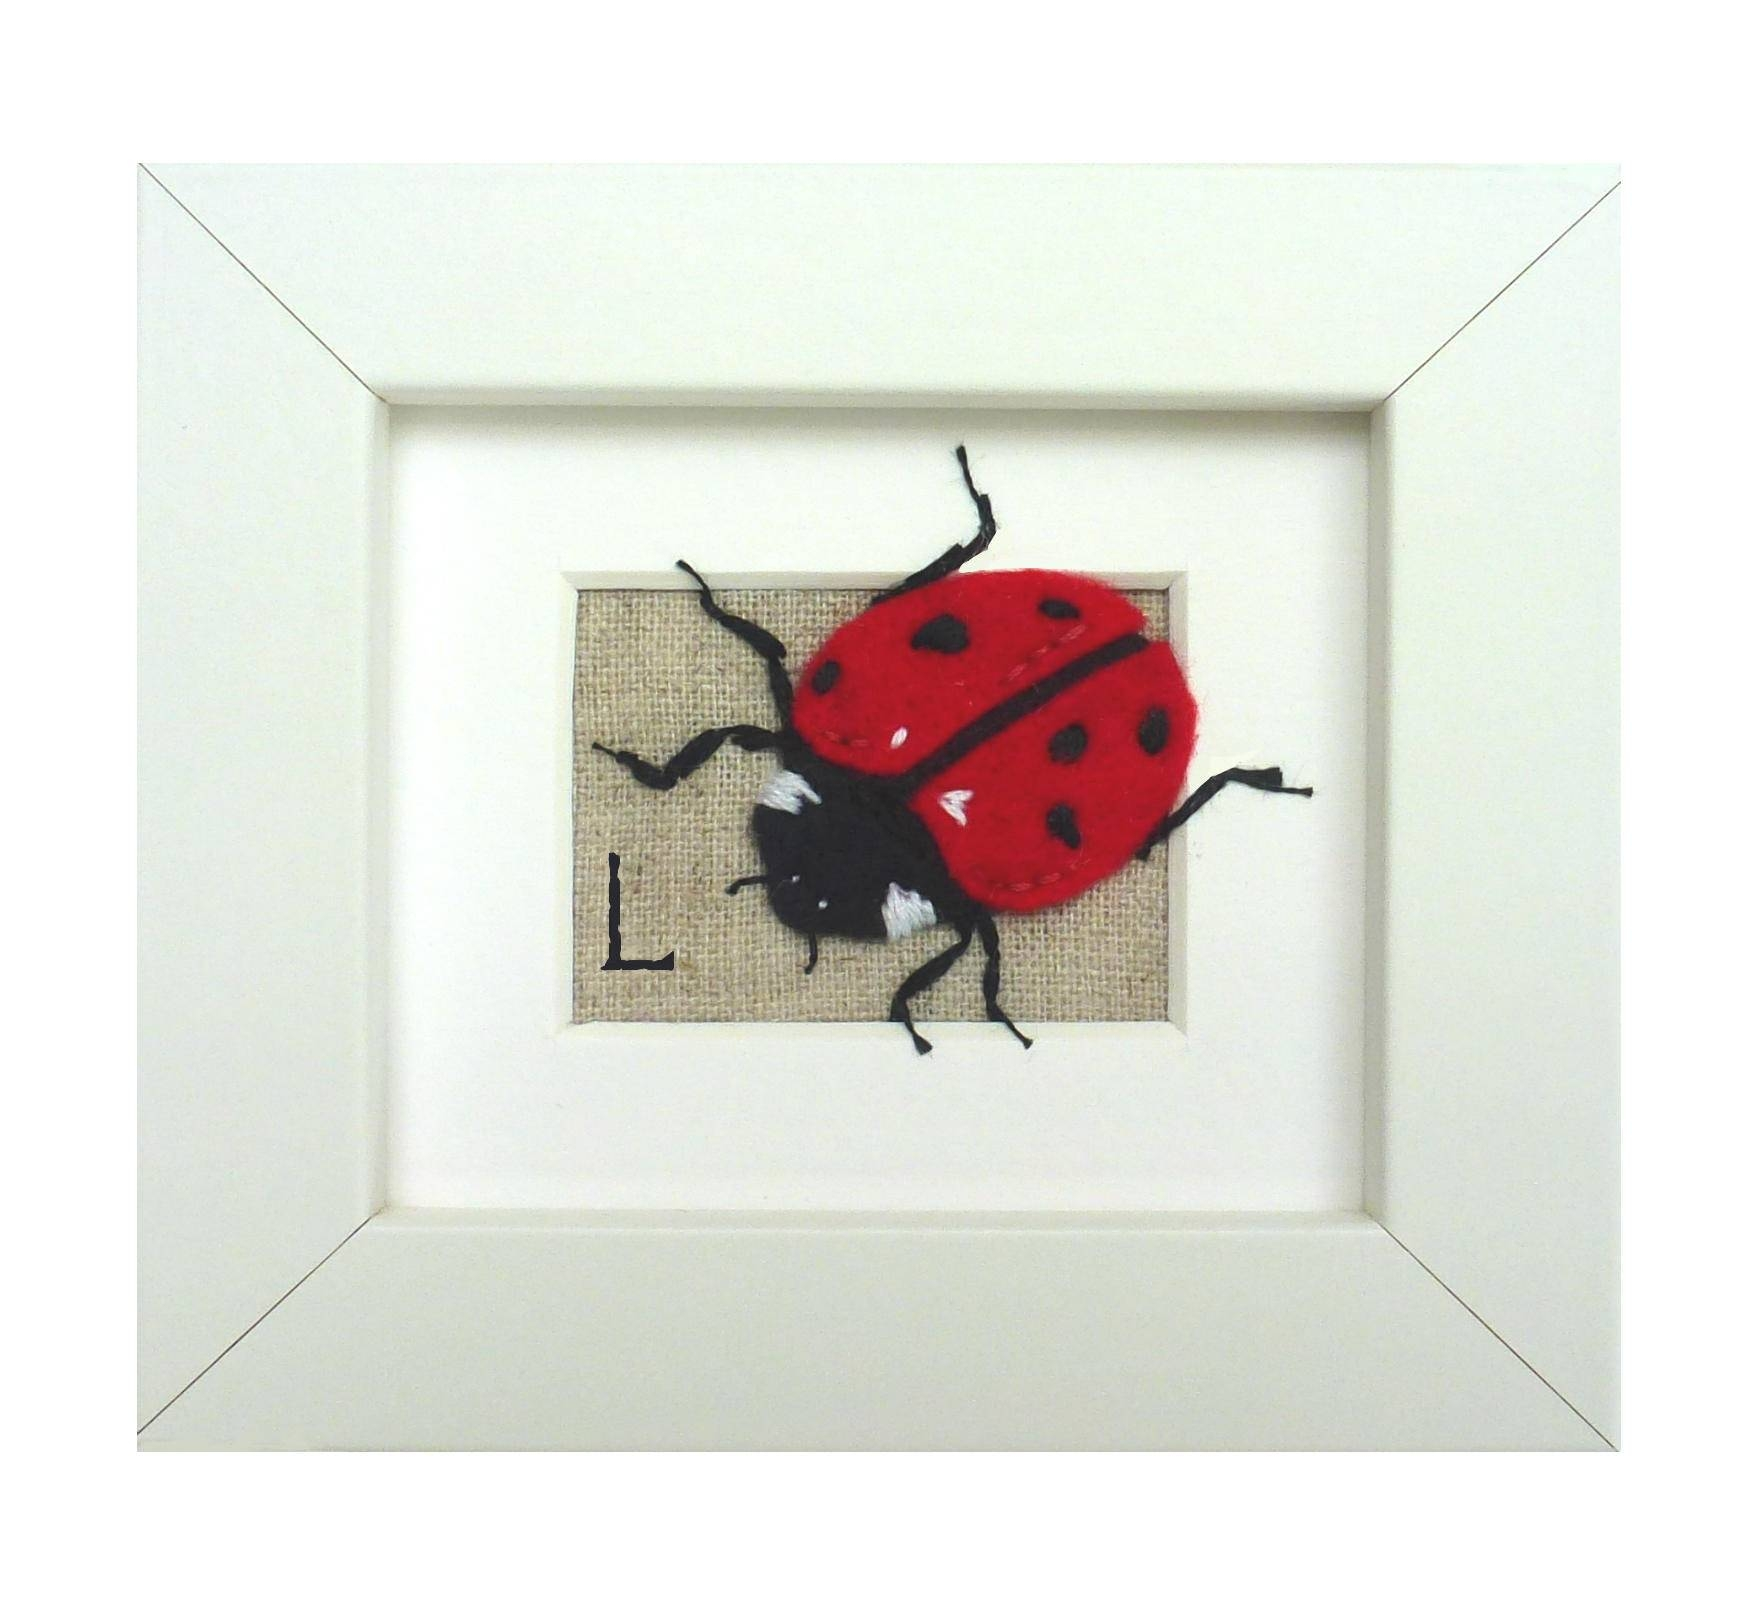 Ladybird Wall Art, Insect Wall Art, Children's Bedroom Art, New With Newest Insect Wall Art (View 15 of 30)